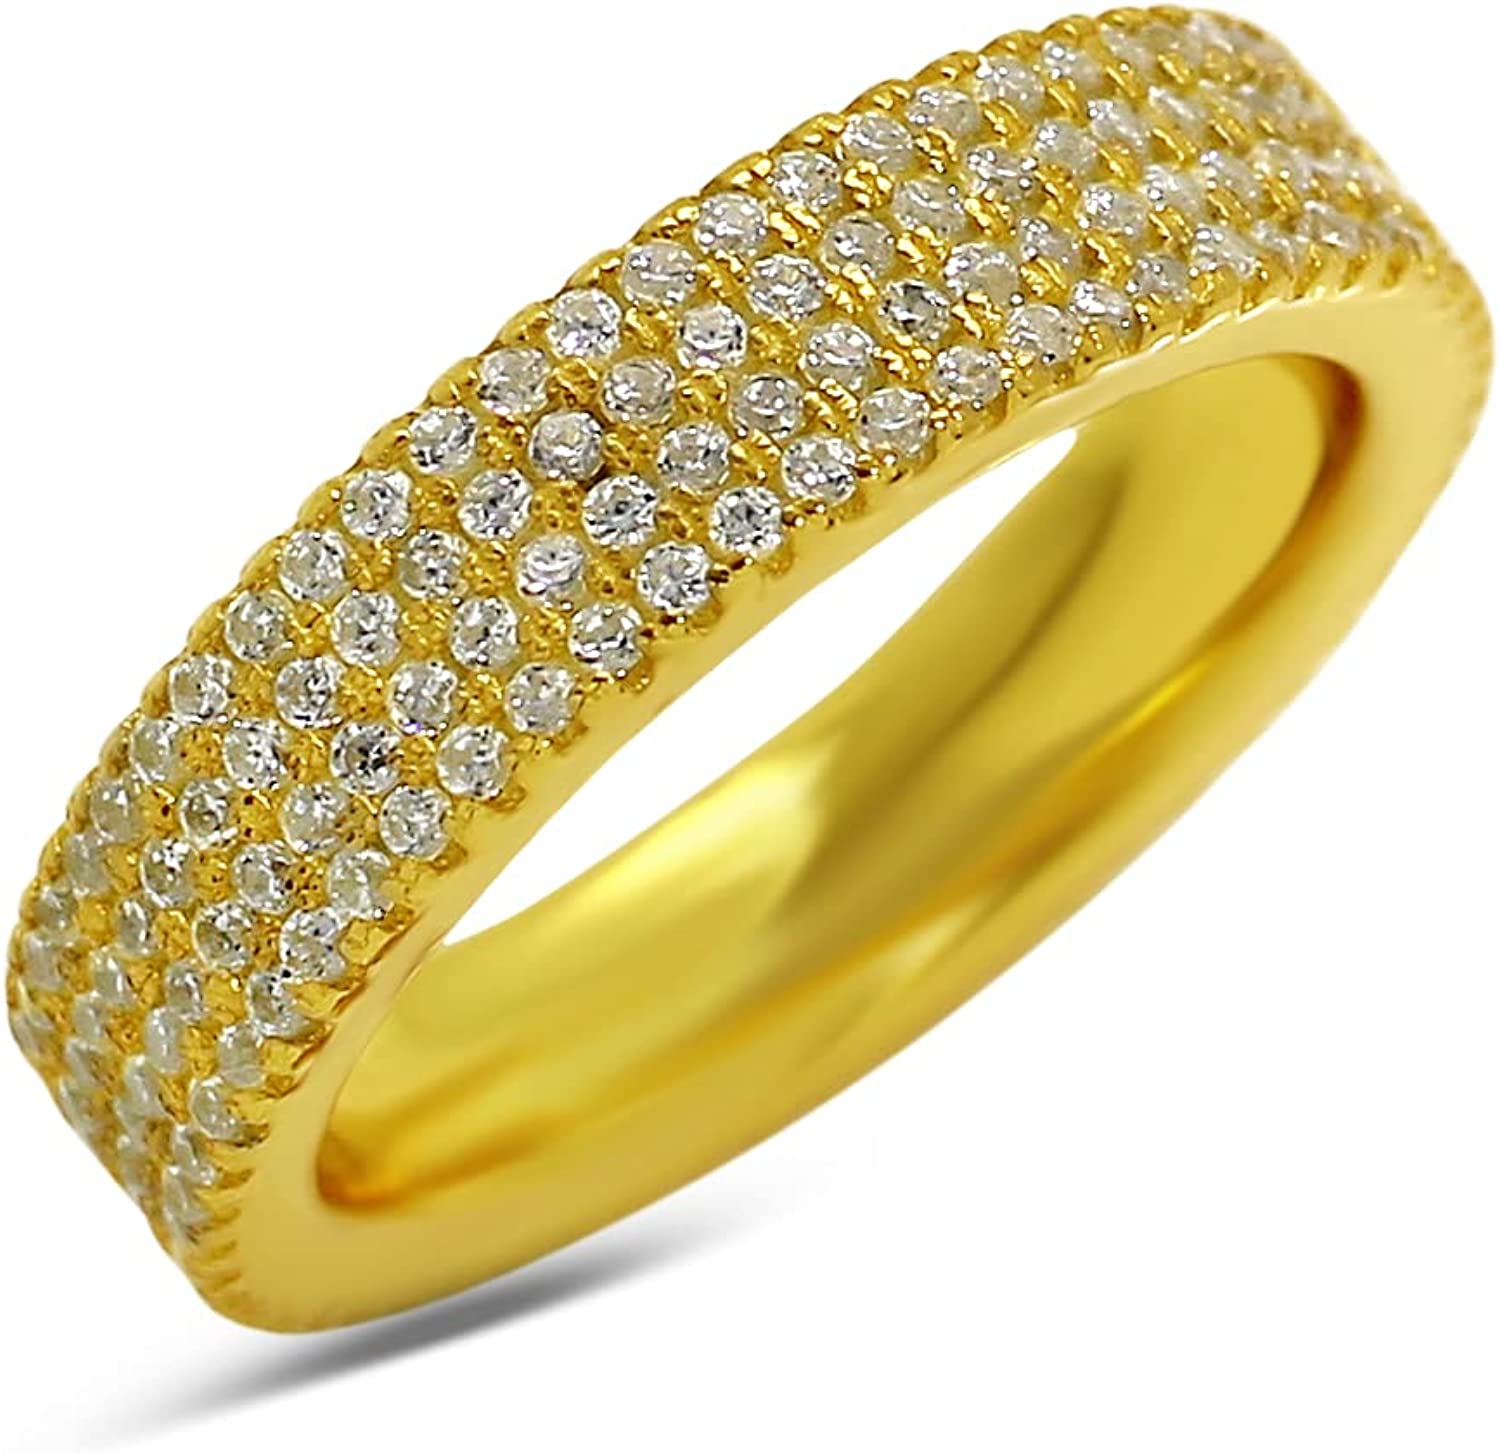 16K Gold Cubic Zirconia Over item handling Gemstone Wo Eternity for Engagement Ring Max 73% OFF